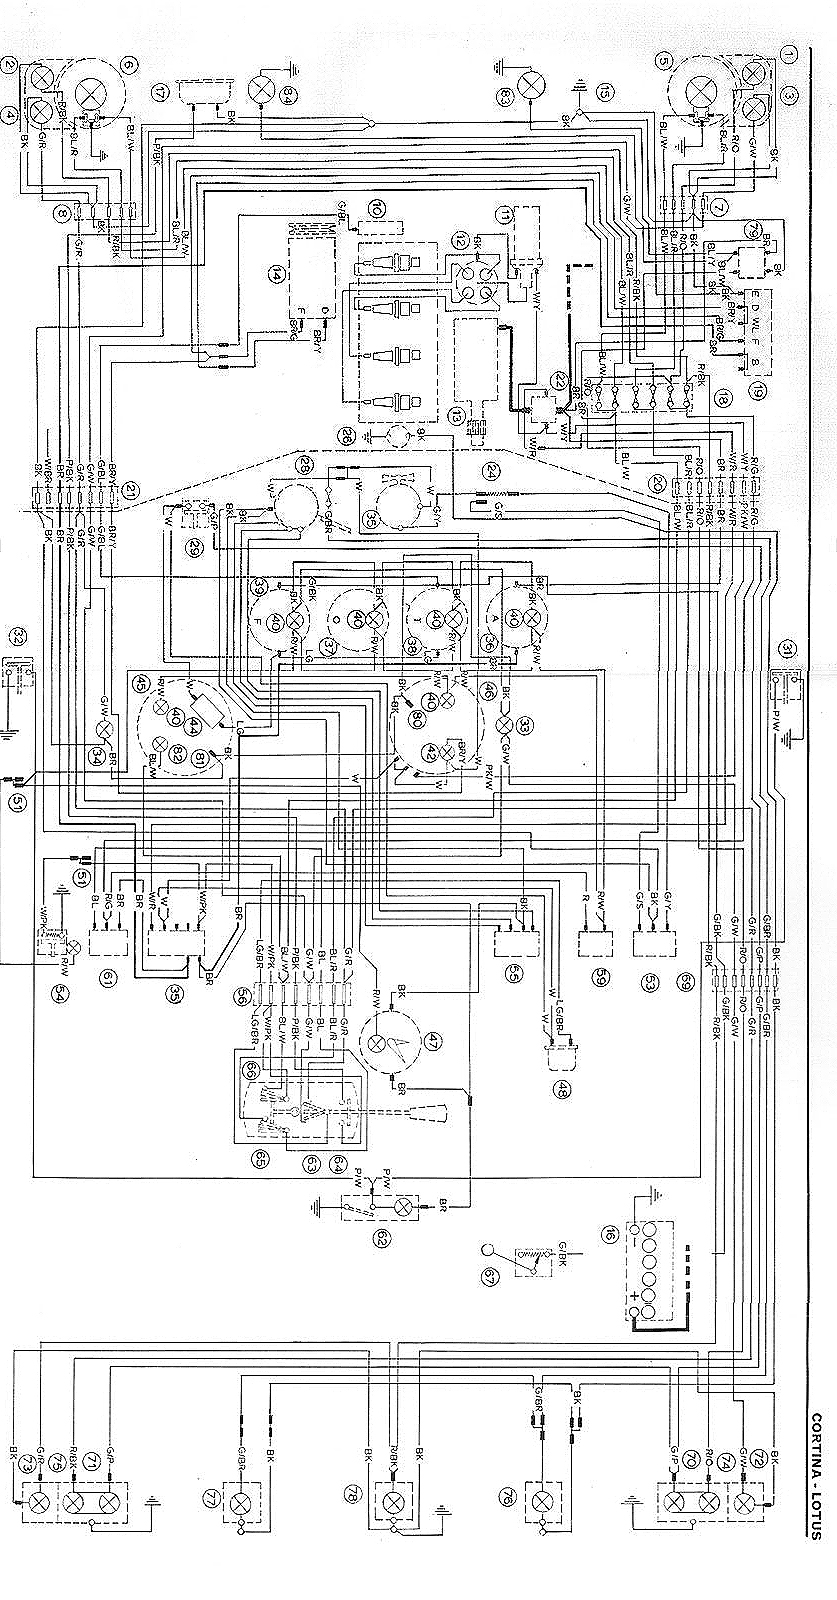 medium resolution of wiring diagram jaguar mk2 wiring diagram expert jaguar s type wiring diagram pdf jaguar wiring diagram pdf